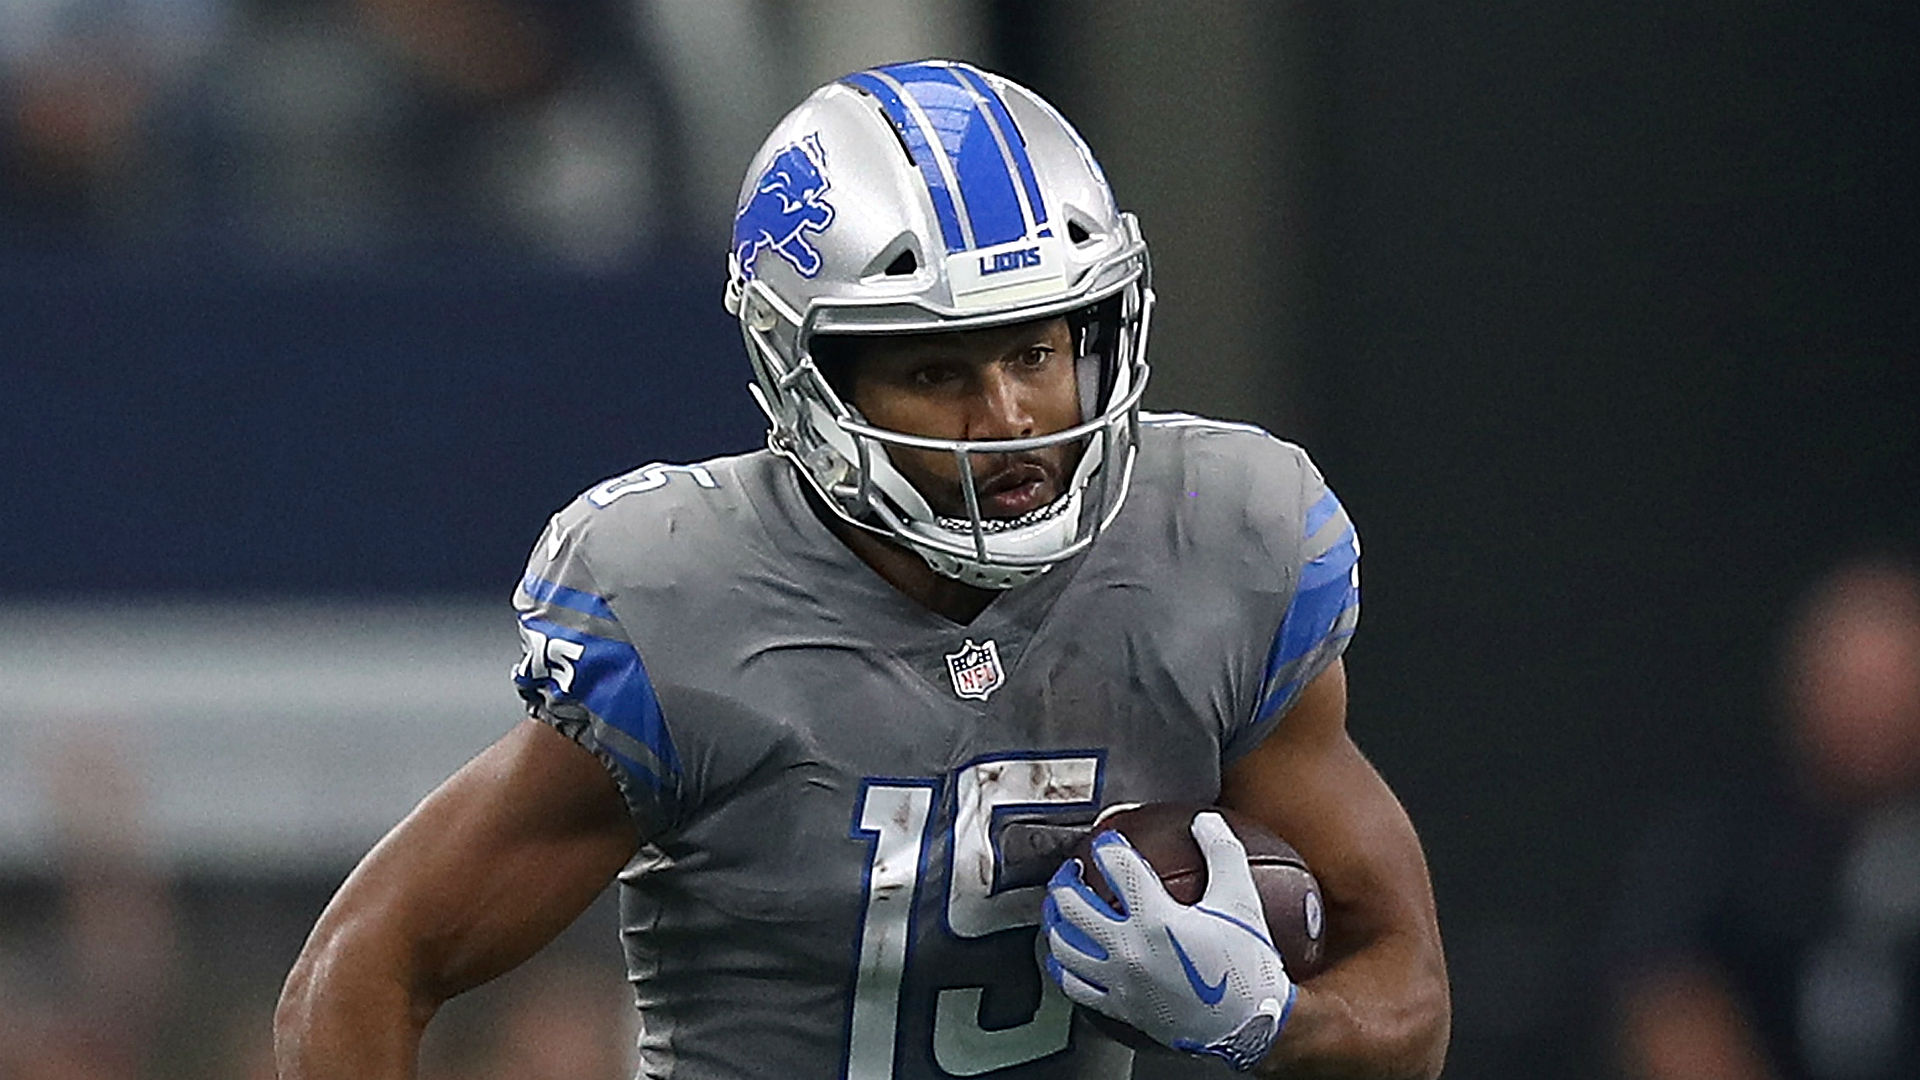 Lions coach Matt Patricia said he made sure Golden Tate was OK after trade